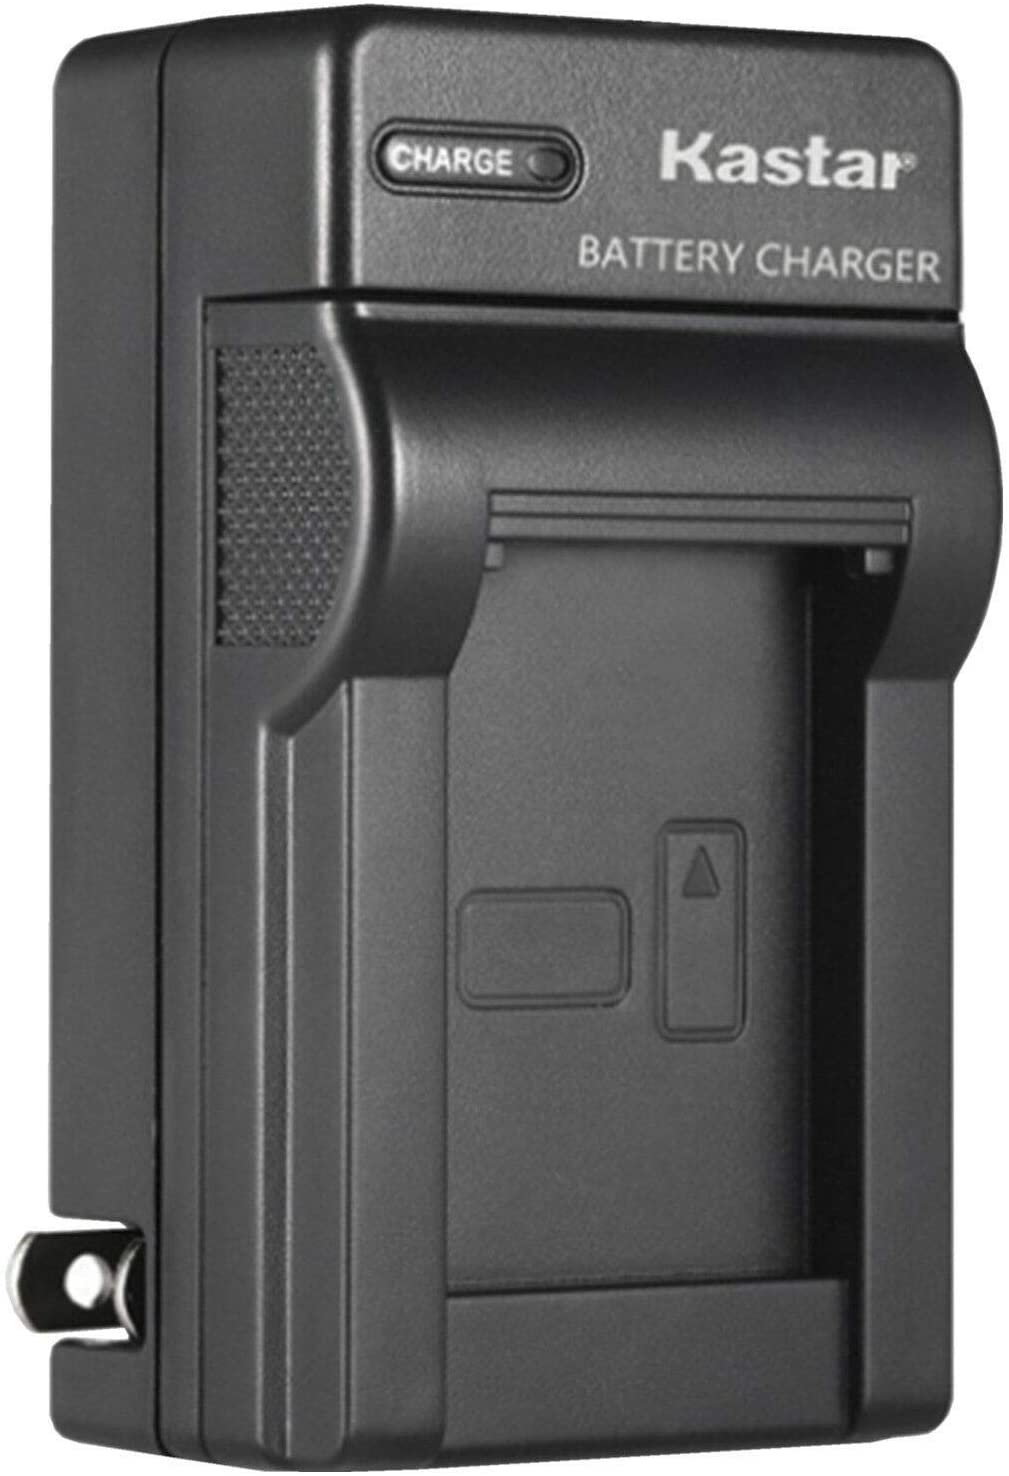 Kastar AC Wall Battery Charger PSP-S110 PS Industry No. 1 discount Replacement Sony for